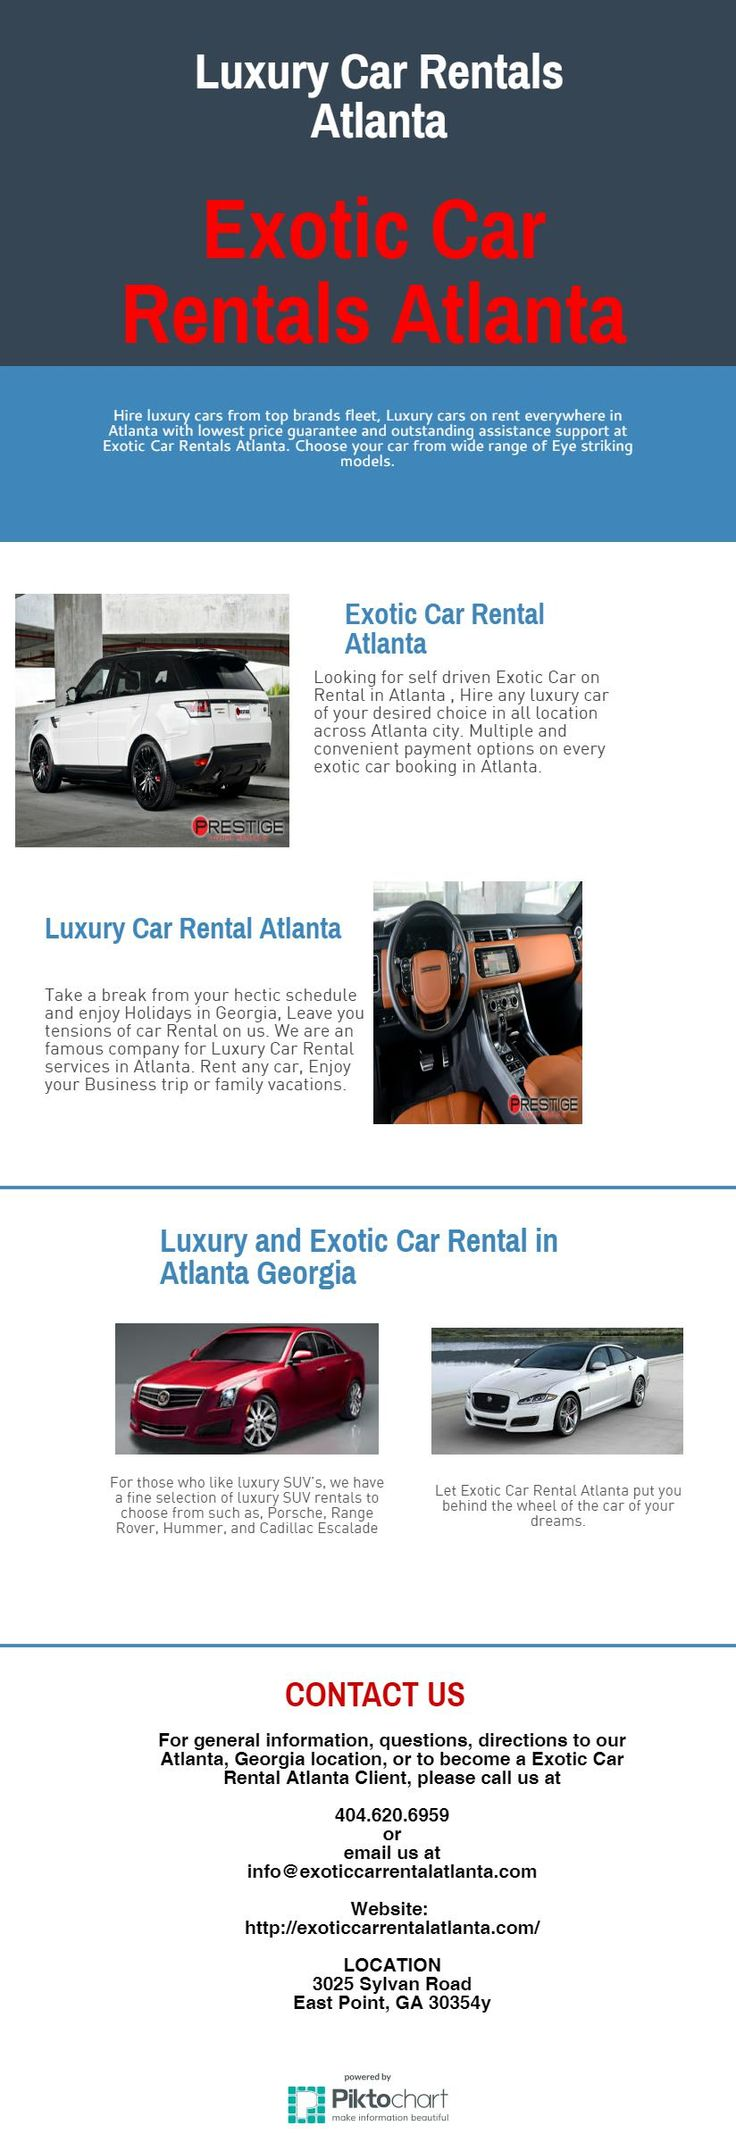 Let Exotic Car Rental Atlanta put you behind the wheel of the car of your dreams. We have the following dream car rentals to choose from, Ferrari Rental, Lamborghini Rental, Aston Martin Rental, Bentley Rental, Corvette Rental and Porsche Rental. We extend the red carpet service to all our clients so your exotic car rental becomes unforgettable.